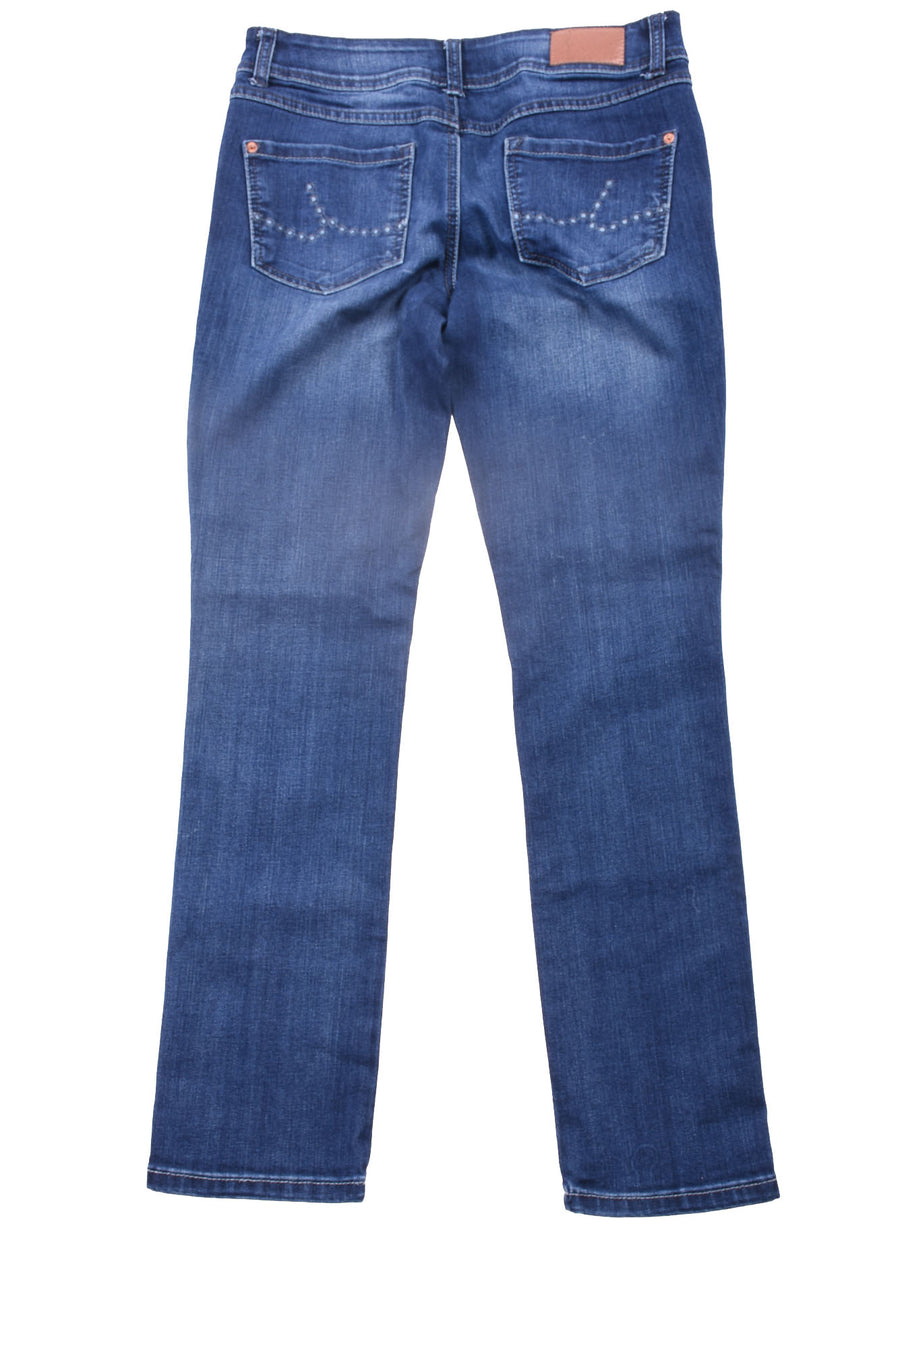 USED INC Women's Jeans 8 Blue